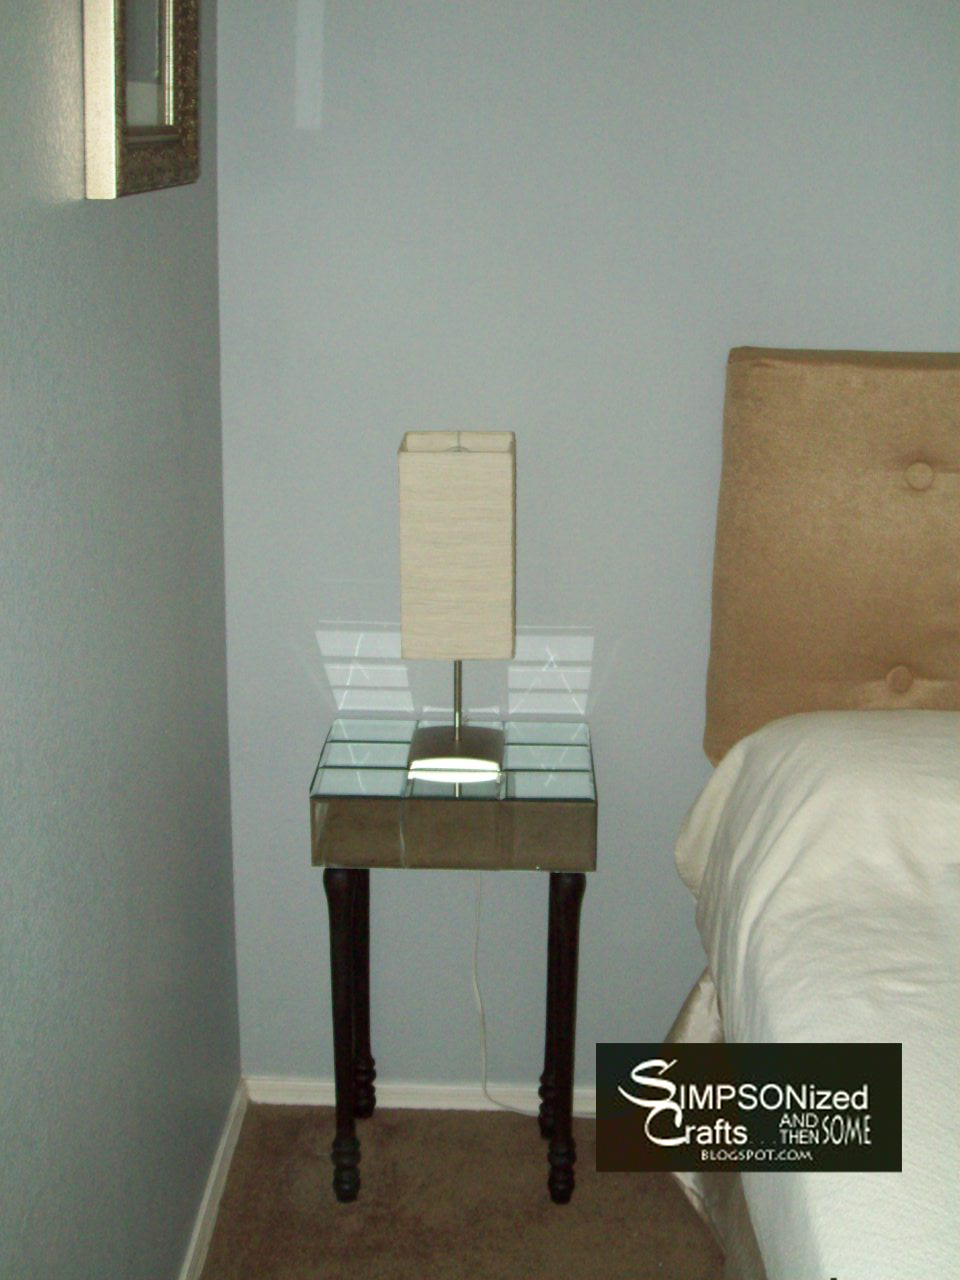 Simpsonized crafts diy mirror nightstand for How to make a mirrored nightstand diy